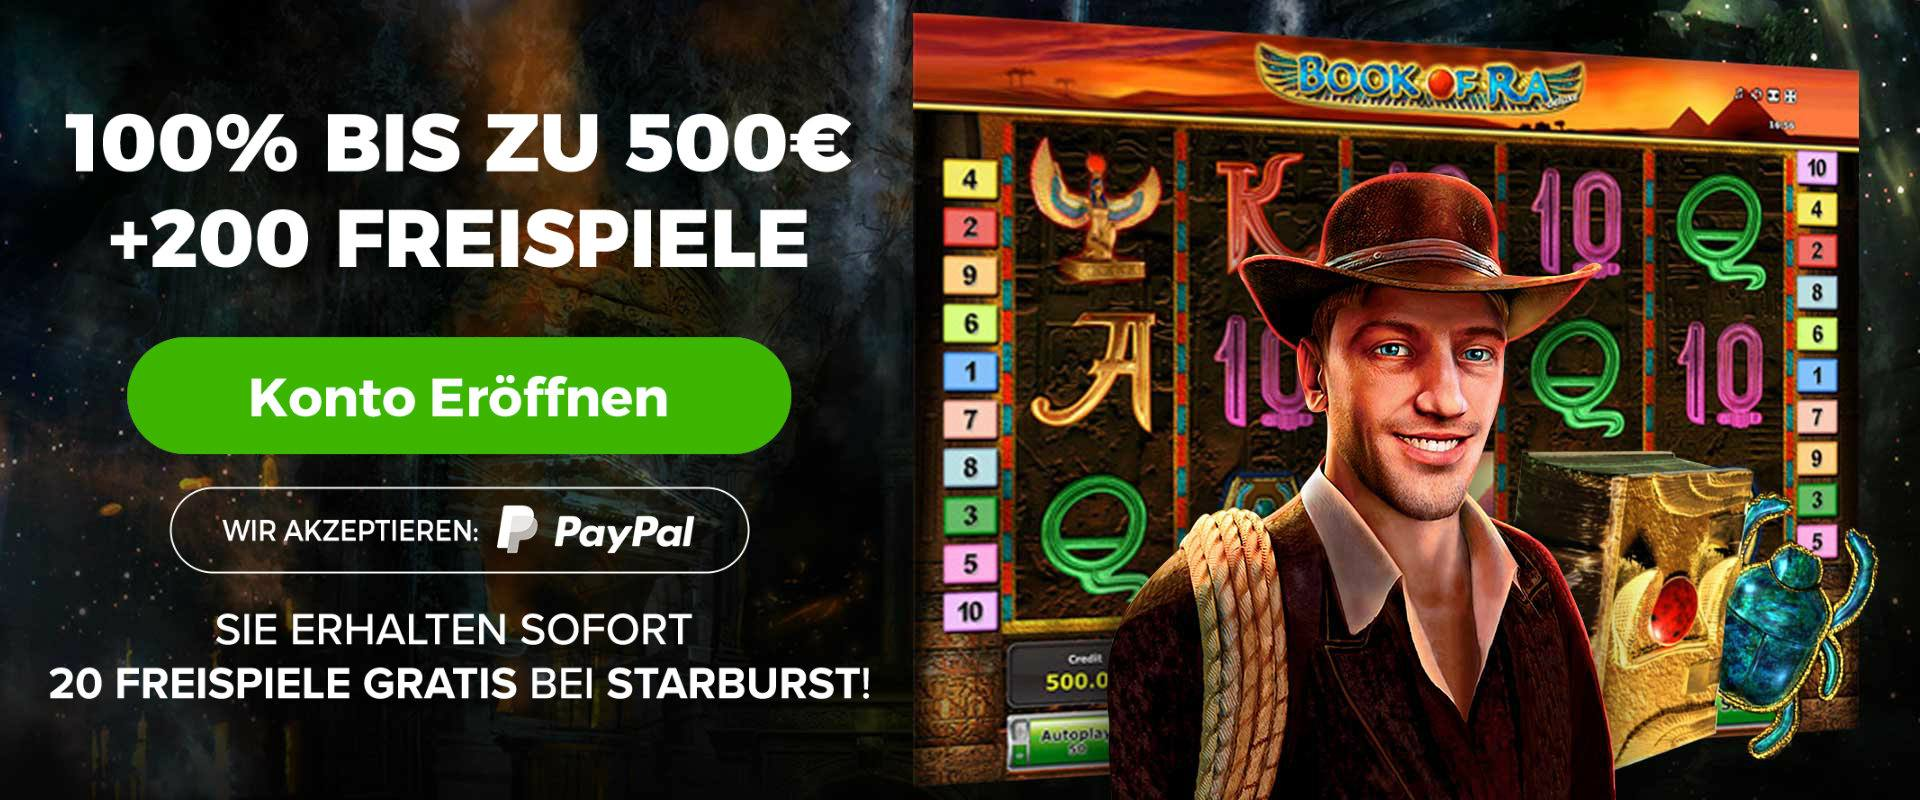 spintastic casino login